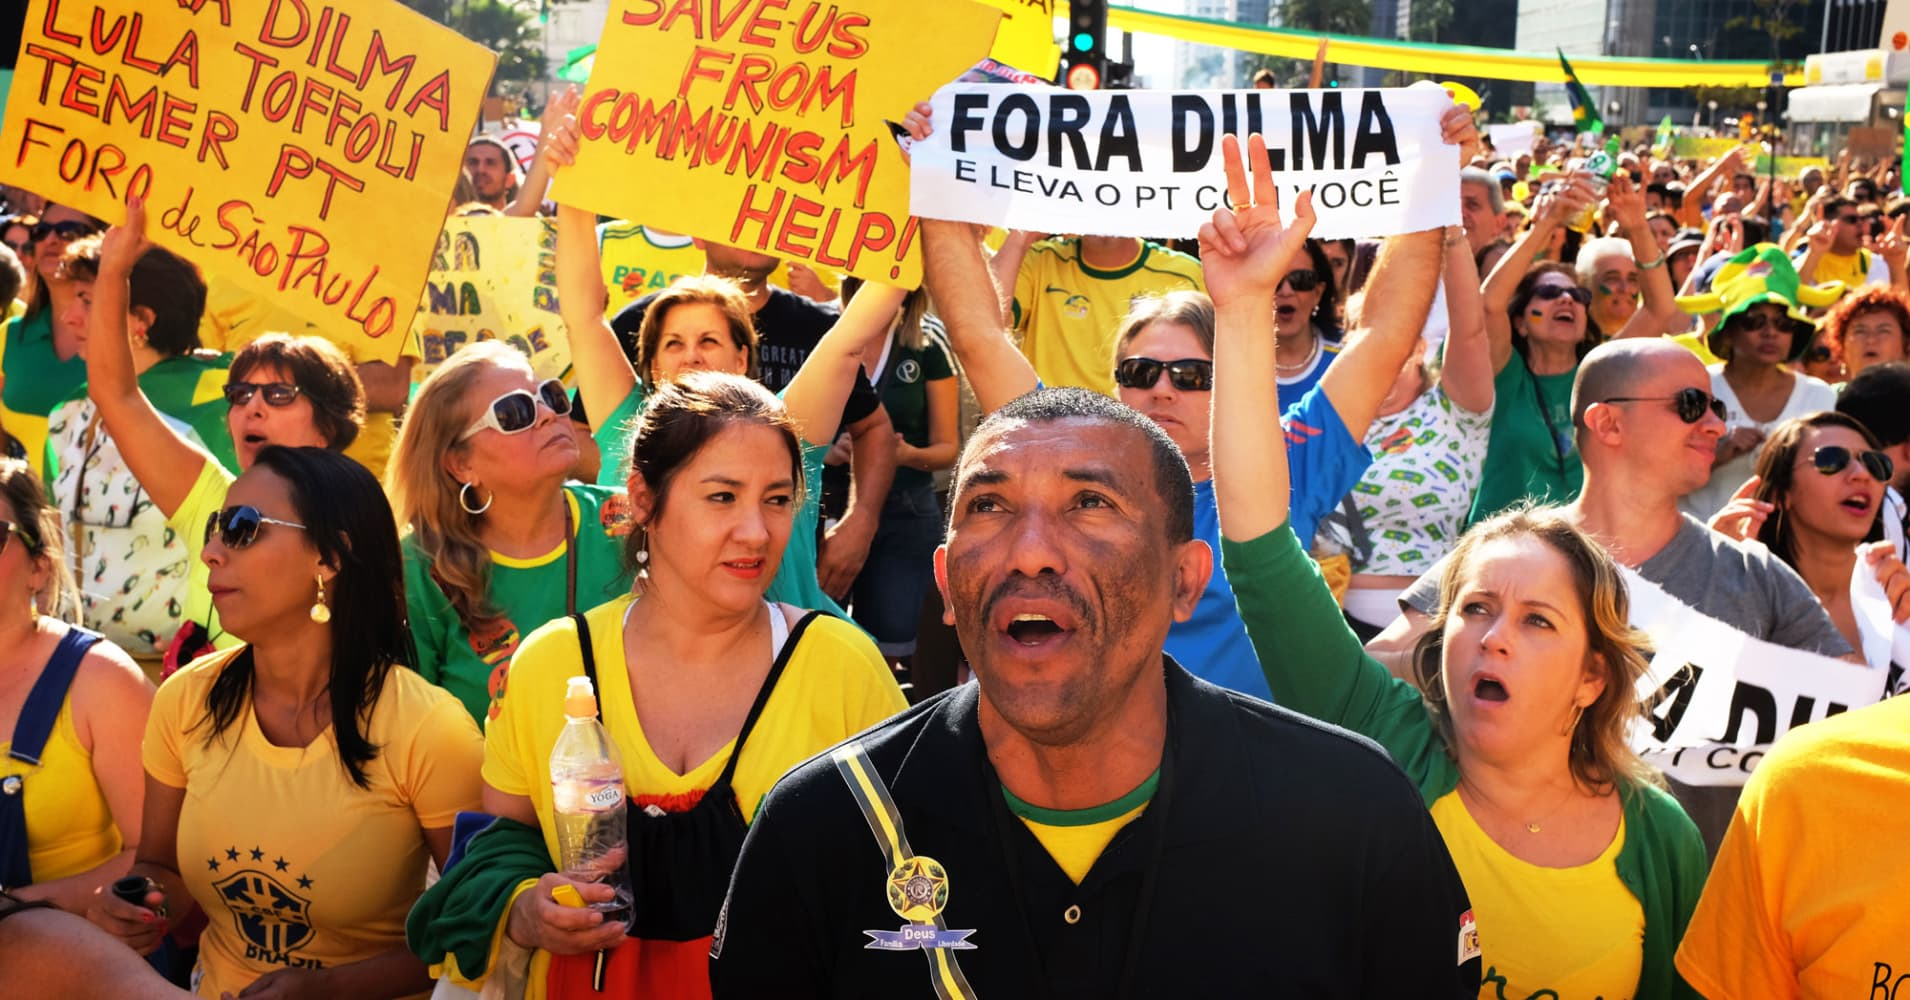 Brazil is in crisis ahead of 2016 Olympics in Rio—commentary